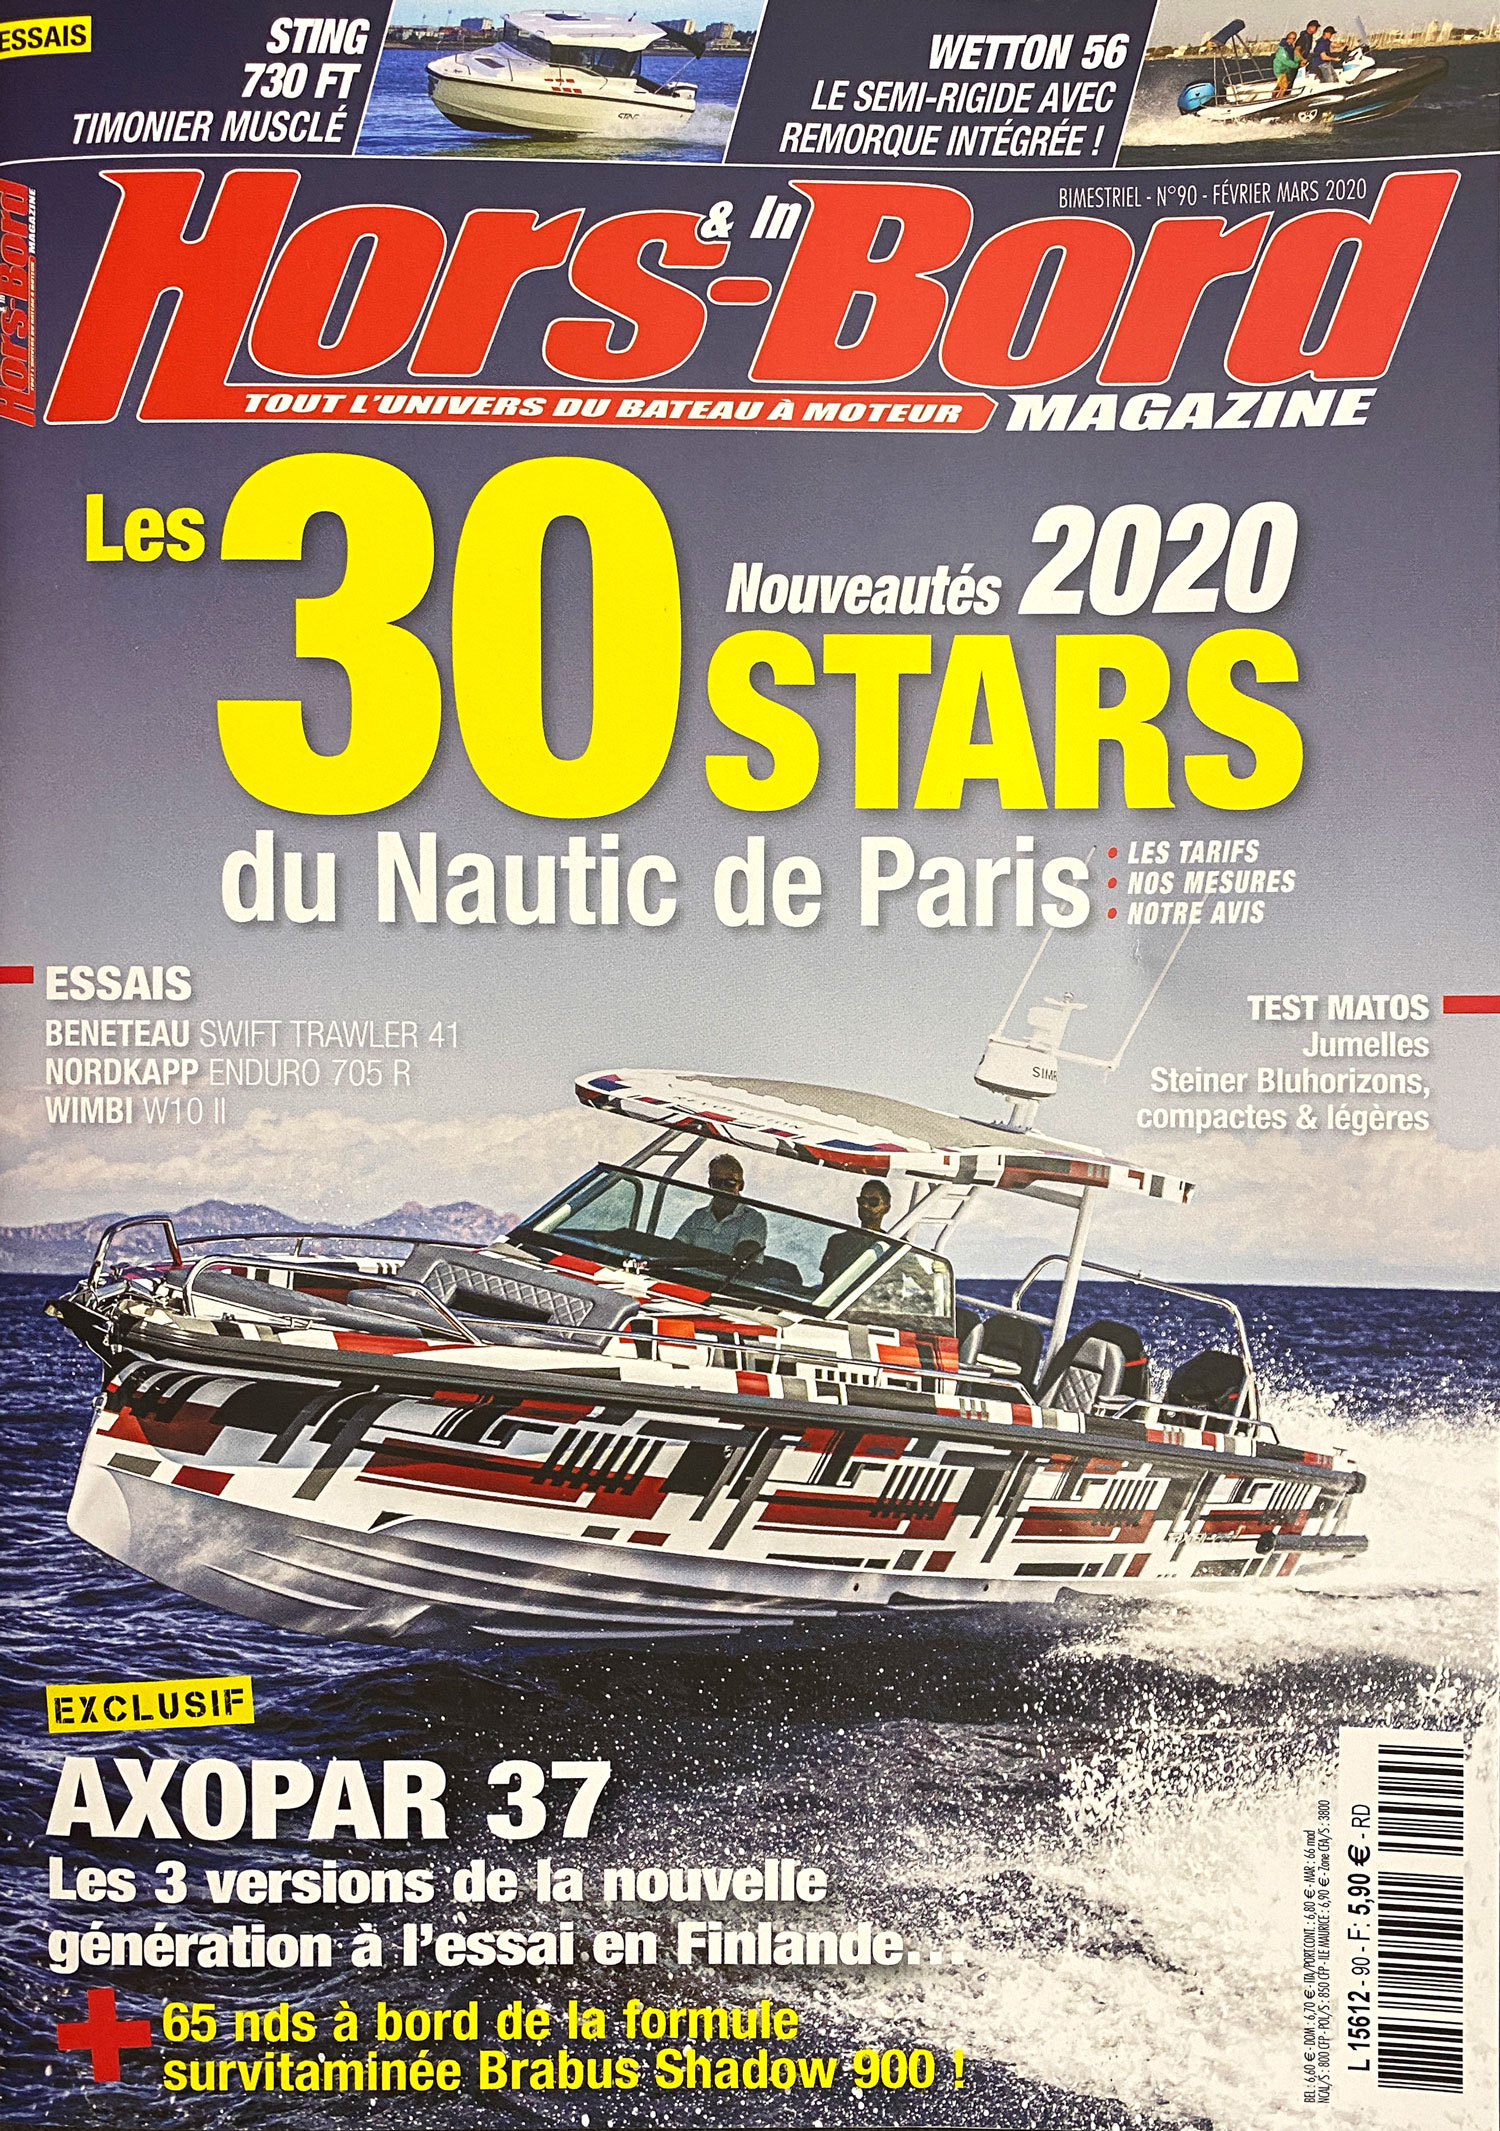 Couverture Hors & In-board magazine